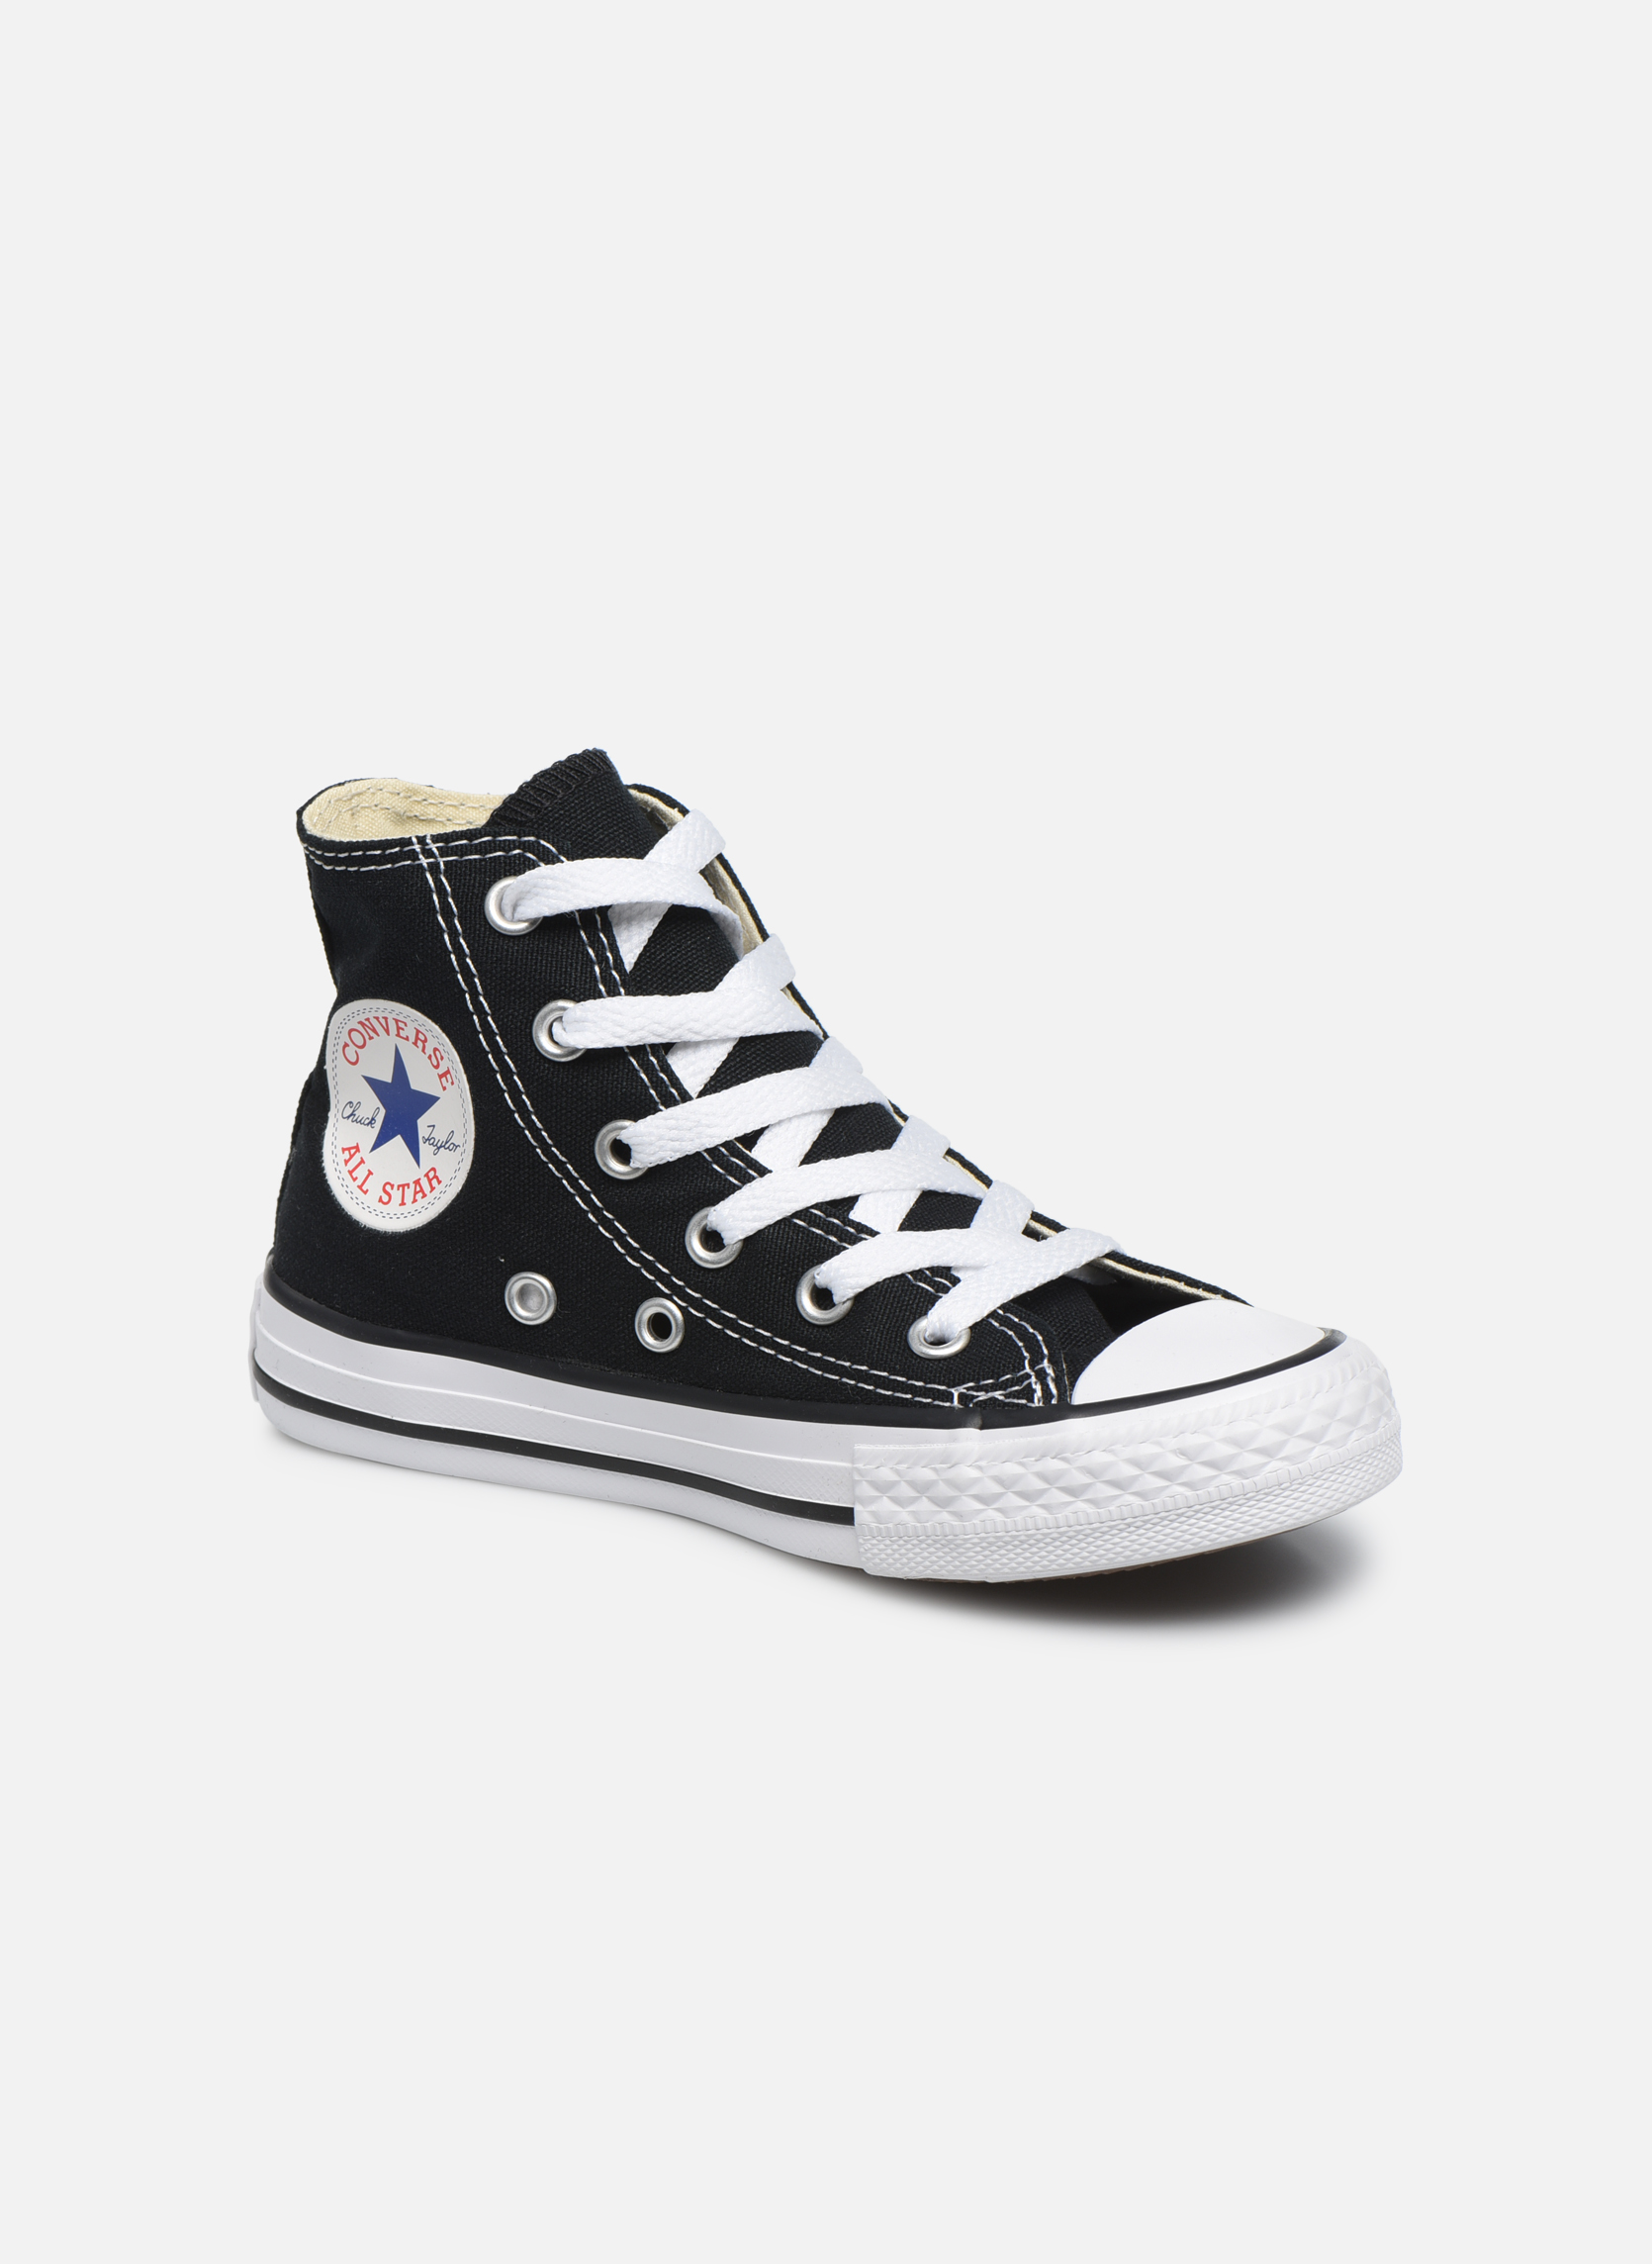 Chuck Taylor All Star Core Hi Black